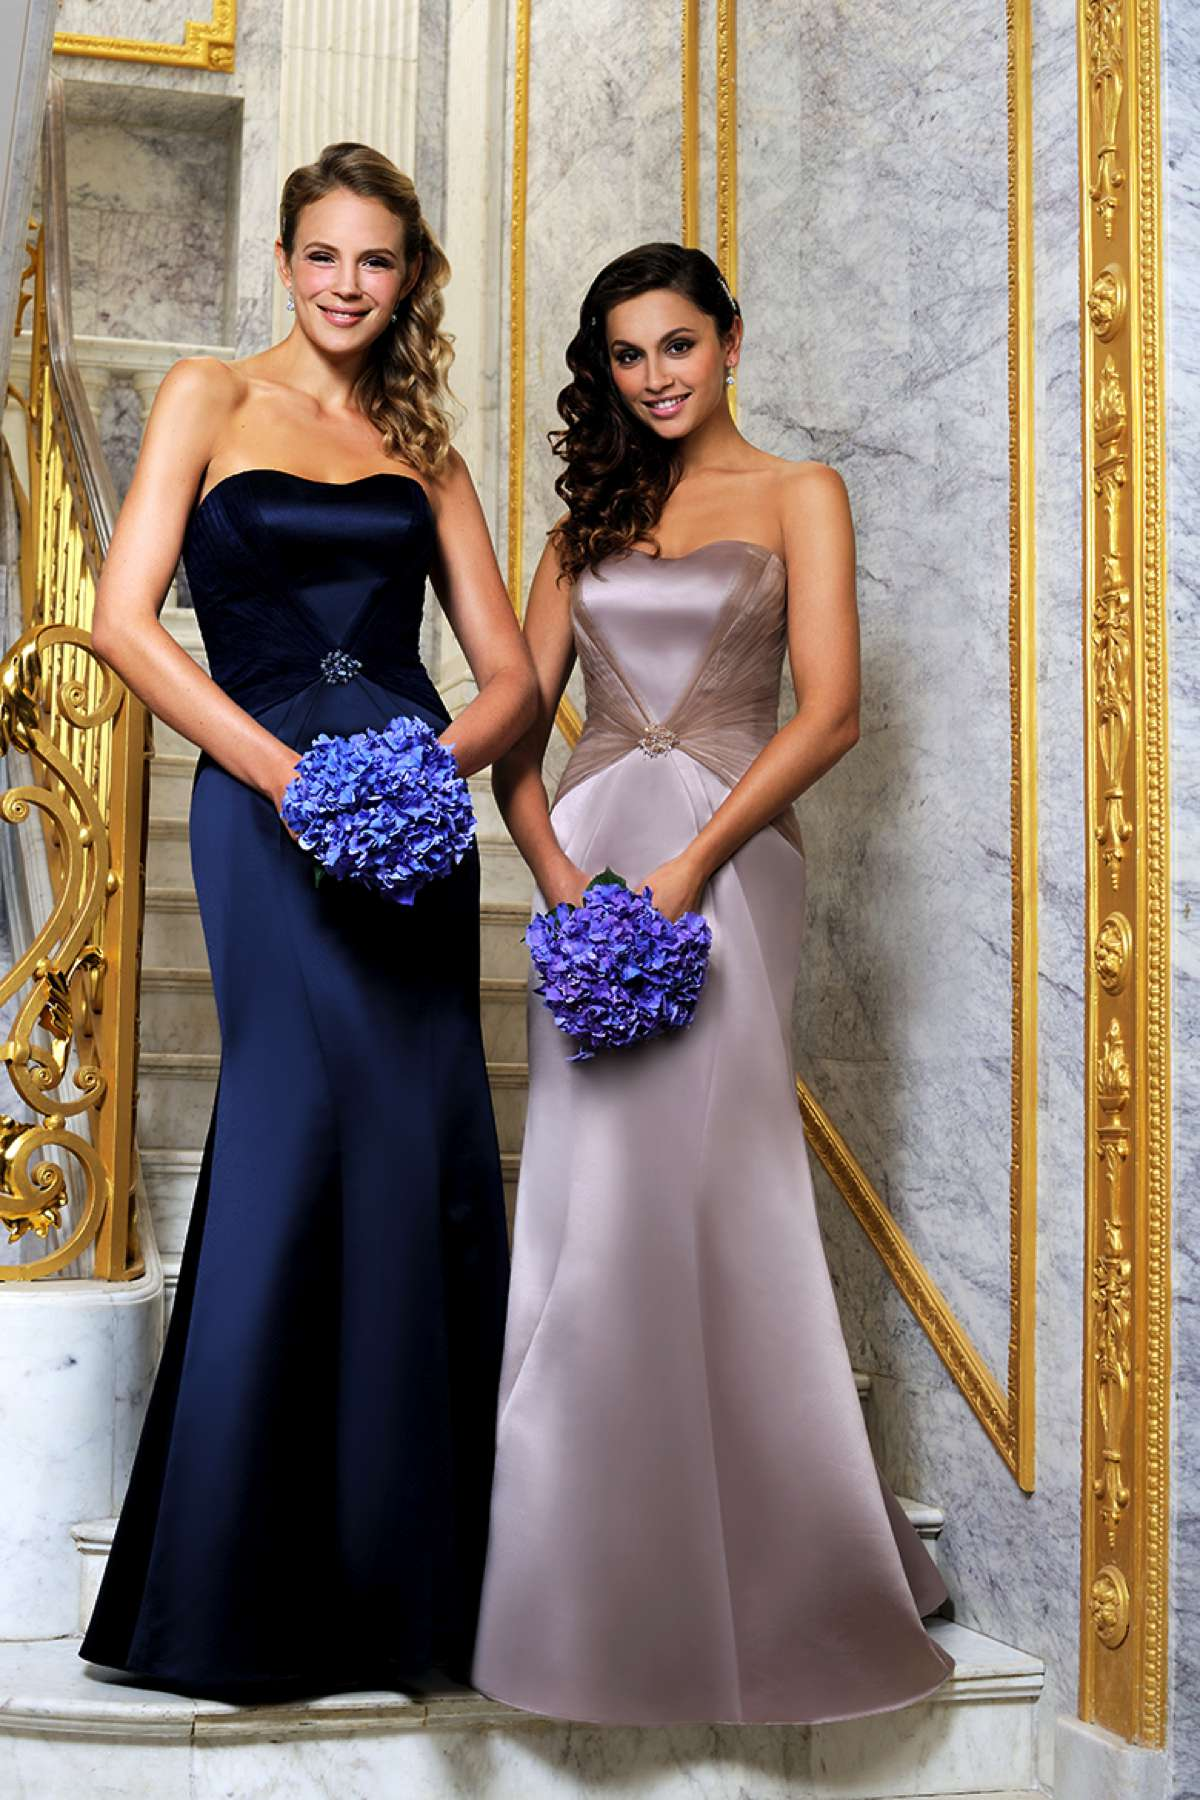 4b95e44c4c8 Stunning bridesmaid dresses at Veromia - Love Our Wedding